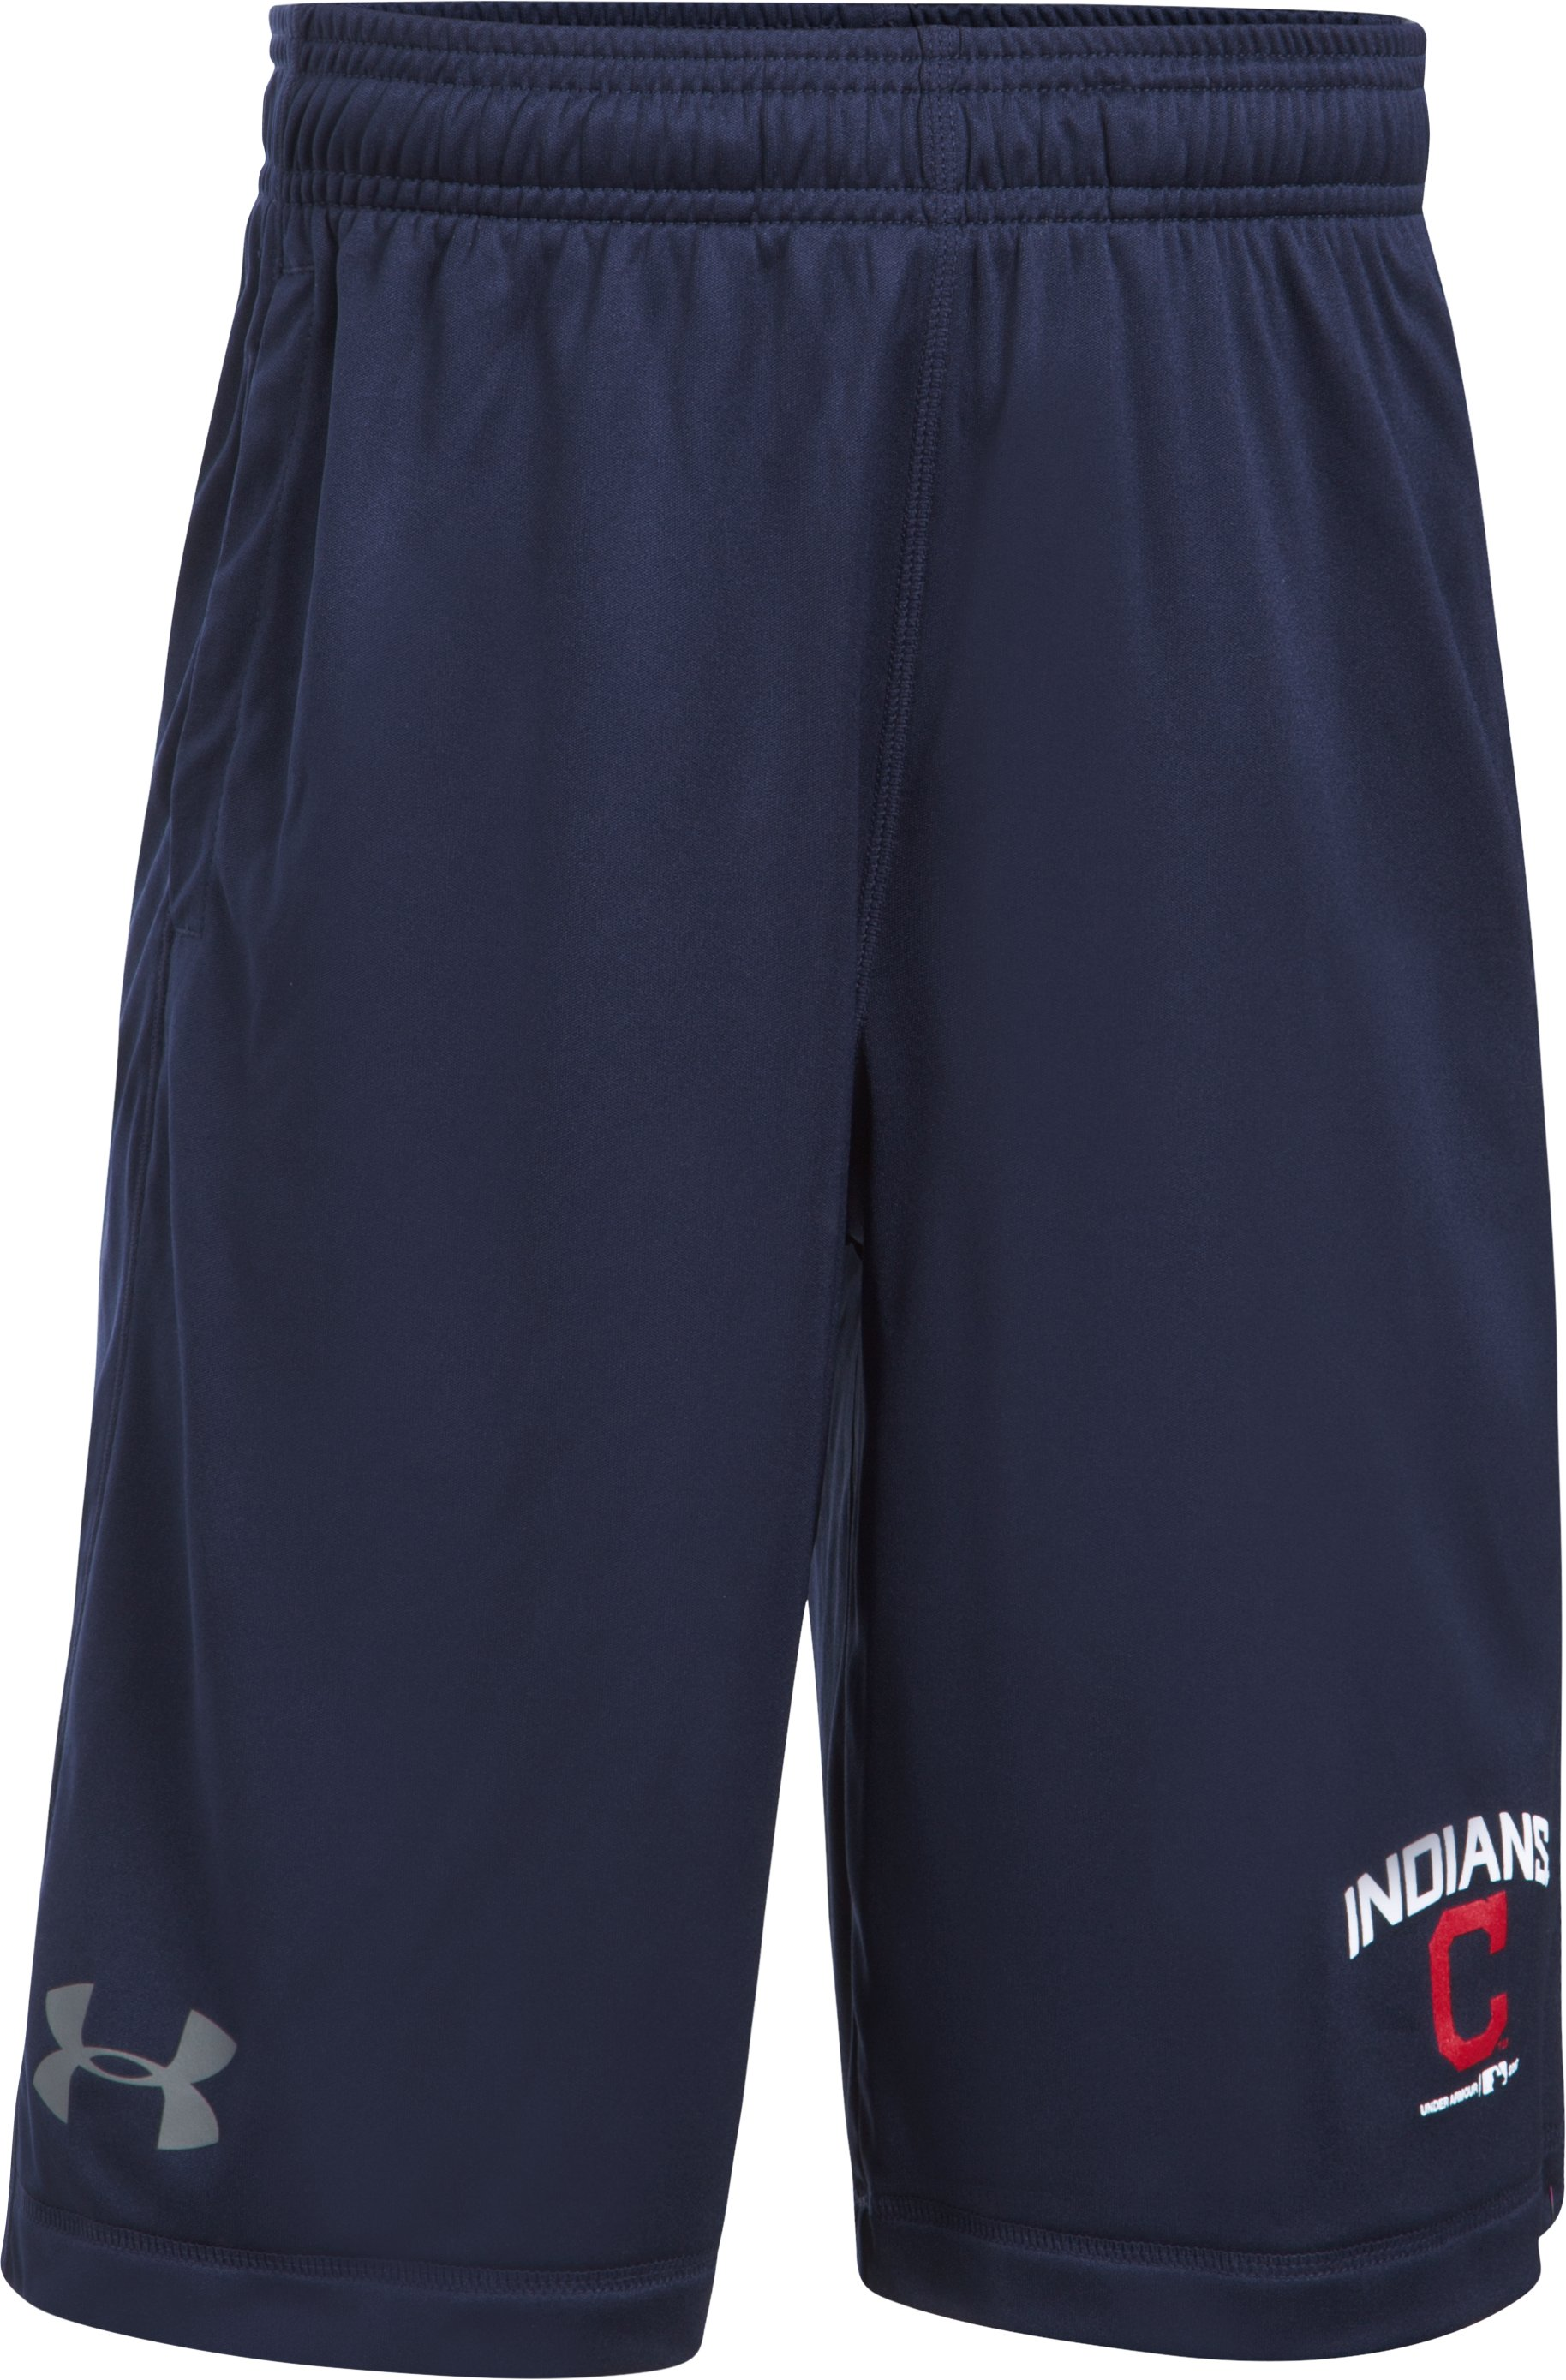 Boys' Cleveland Indians Training Shorts, Midnight Navy,